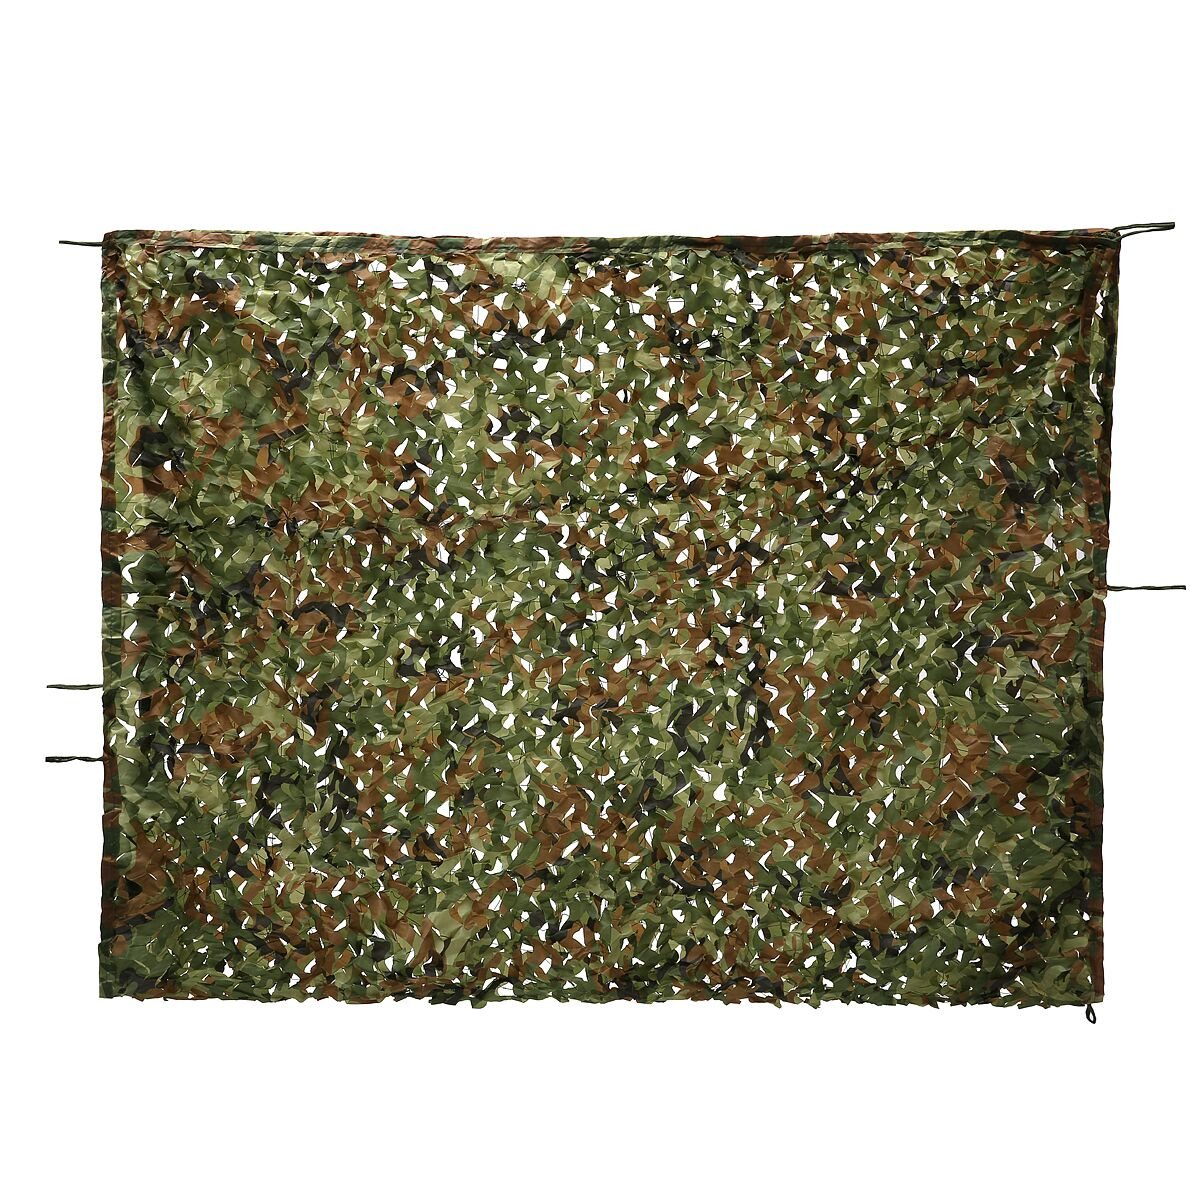 Woodland Camo Net, OUTERDO 6.6ft x 10ft Camouflage Netting Military Desert Camo Netting Camping Hunting Shooting Blind Sunscreen Netting Camouflage Party Decoration on Halloween Christmas by OUTERDO (Image #2)